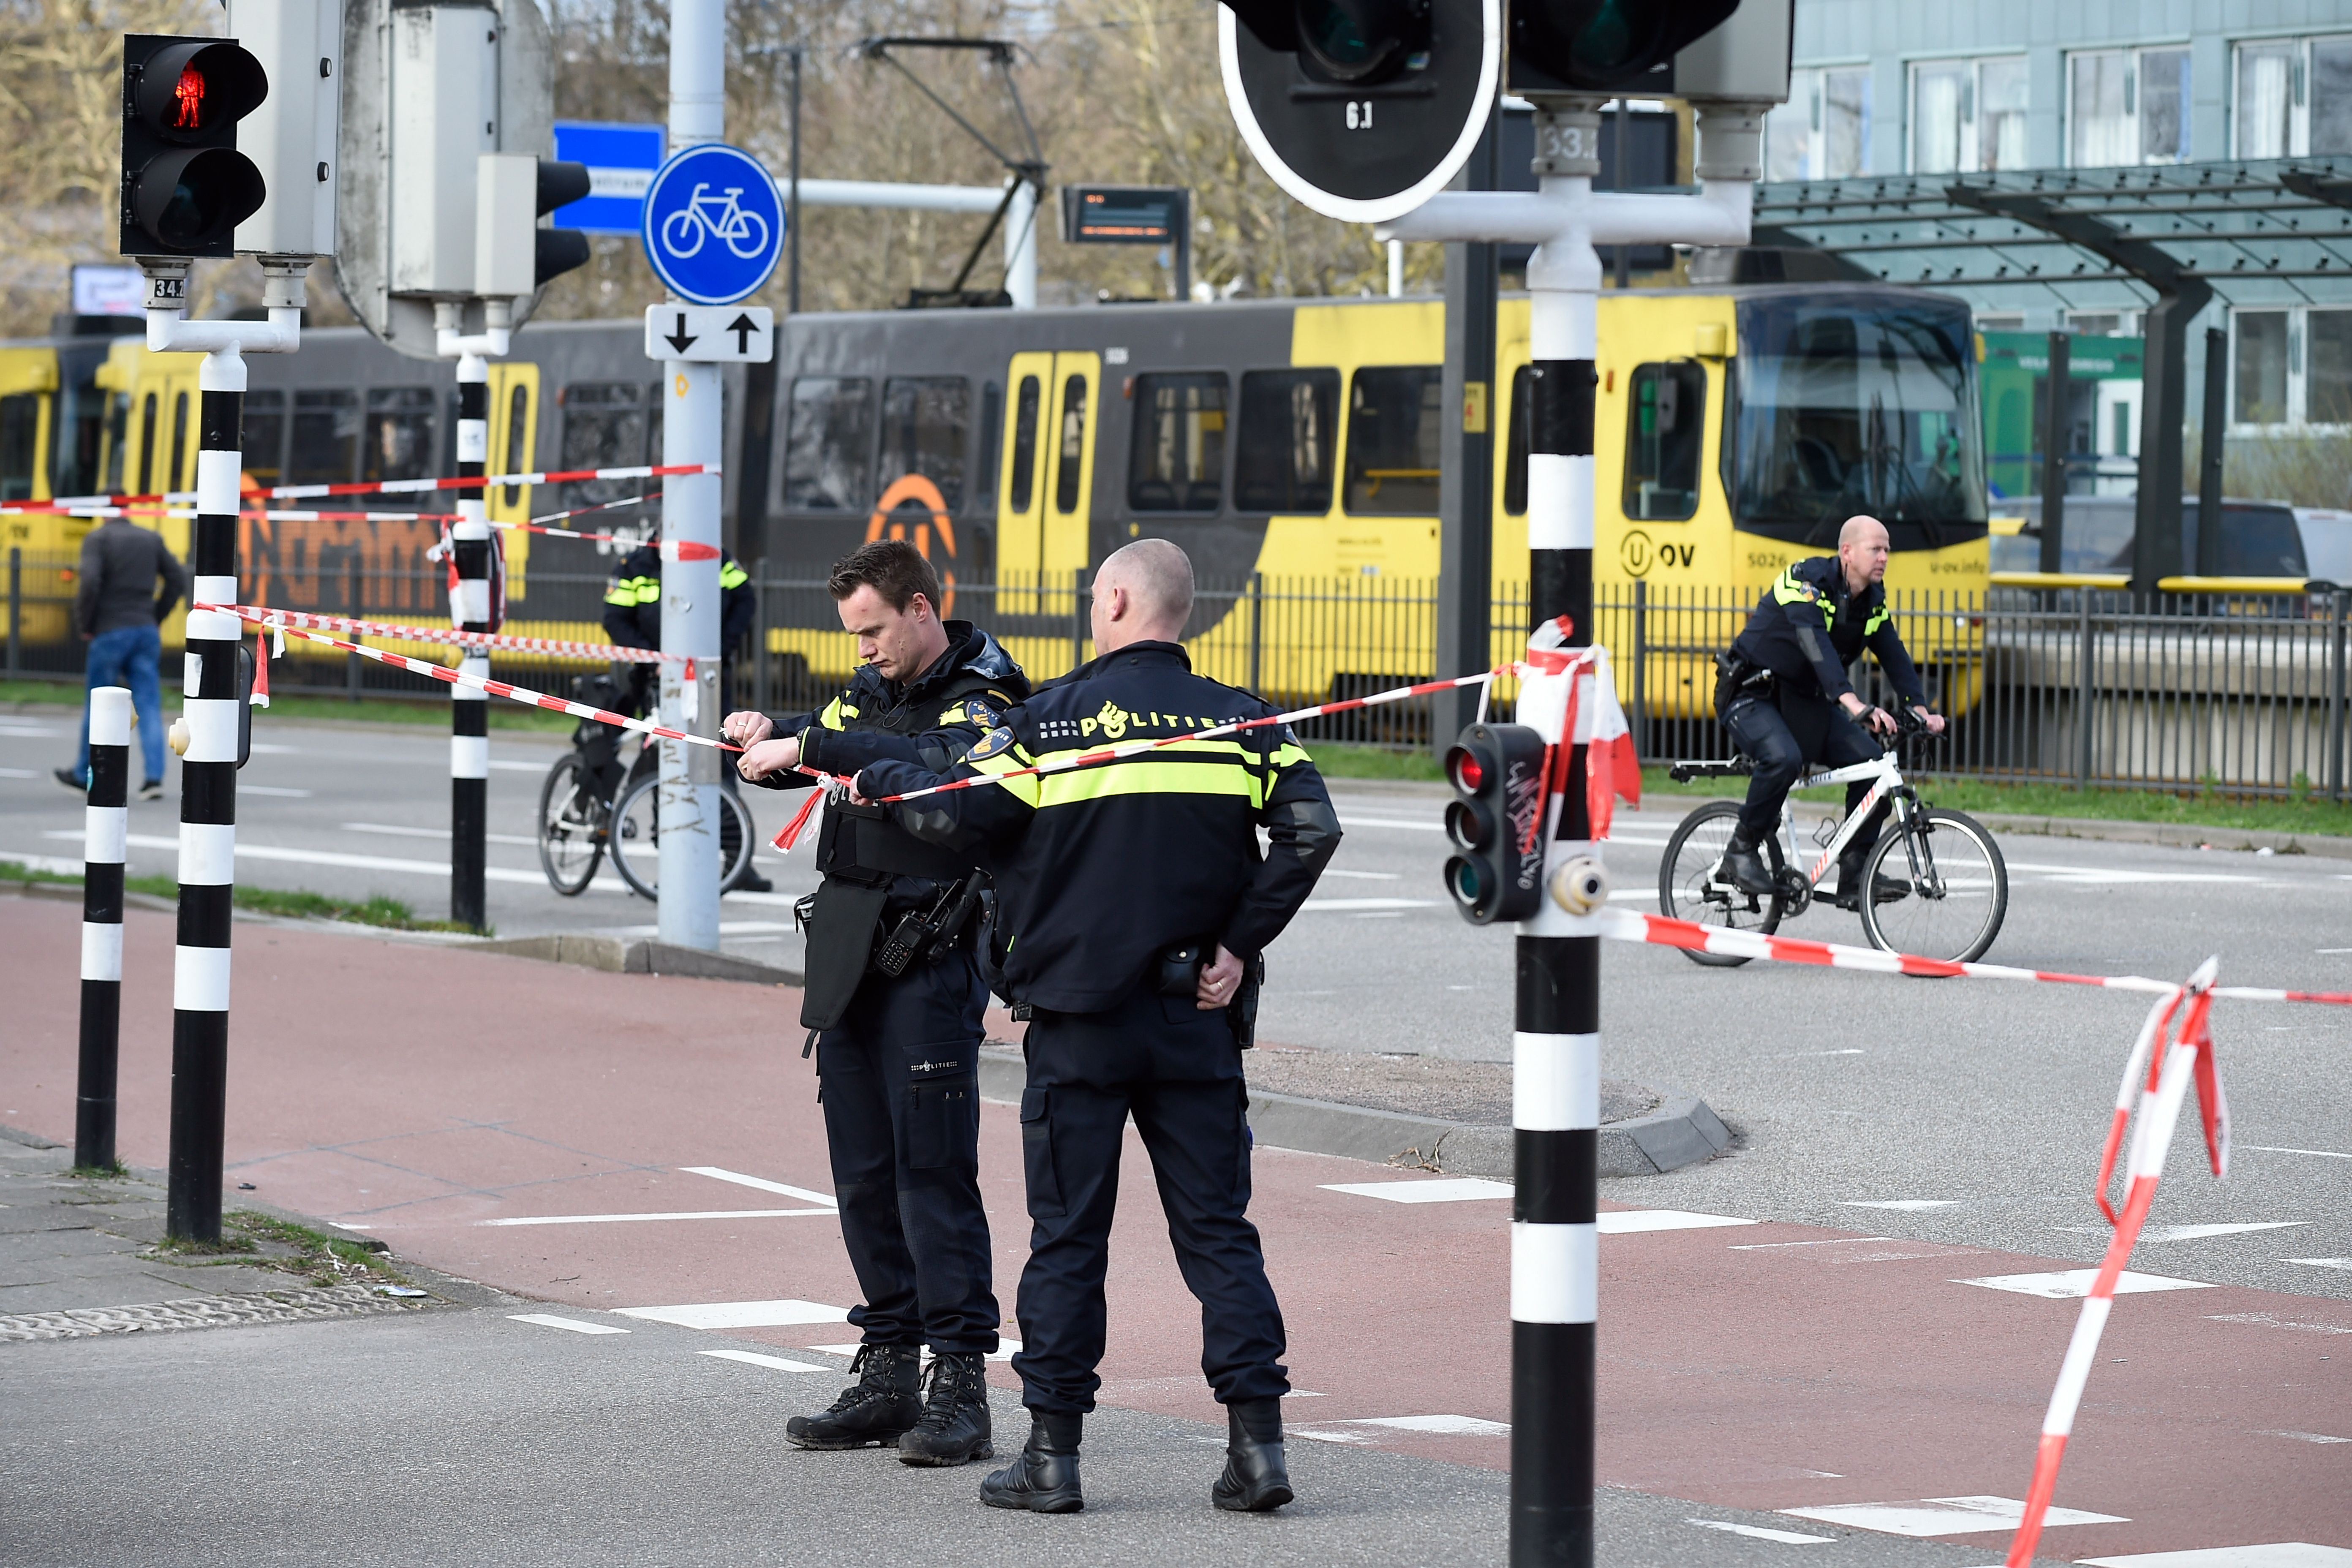 Policemen are at work on March 18, 2019 in Utrecht, near a tram where a gunman opened fire killing at least three persons and wounding several in what officials said was a possible terrorist incident. (JOHN THYS/AFP/Getty Images)